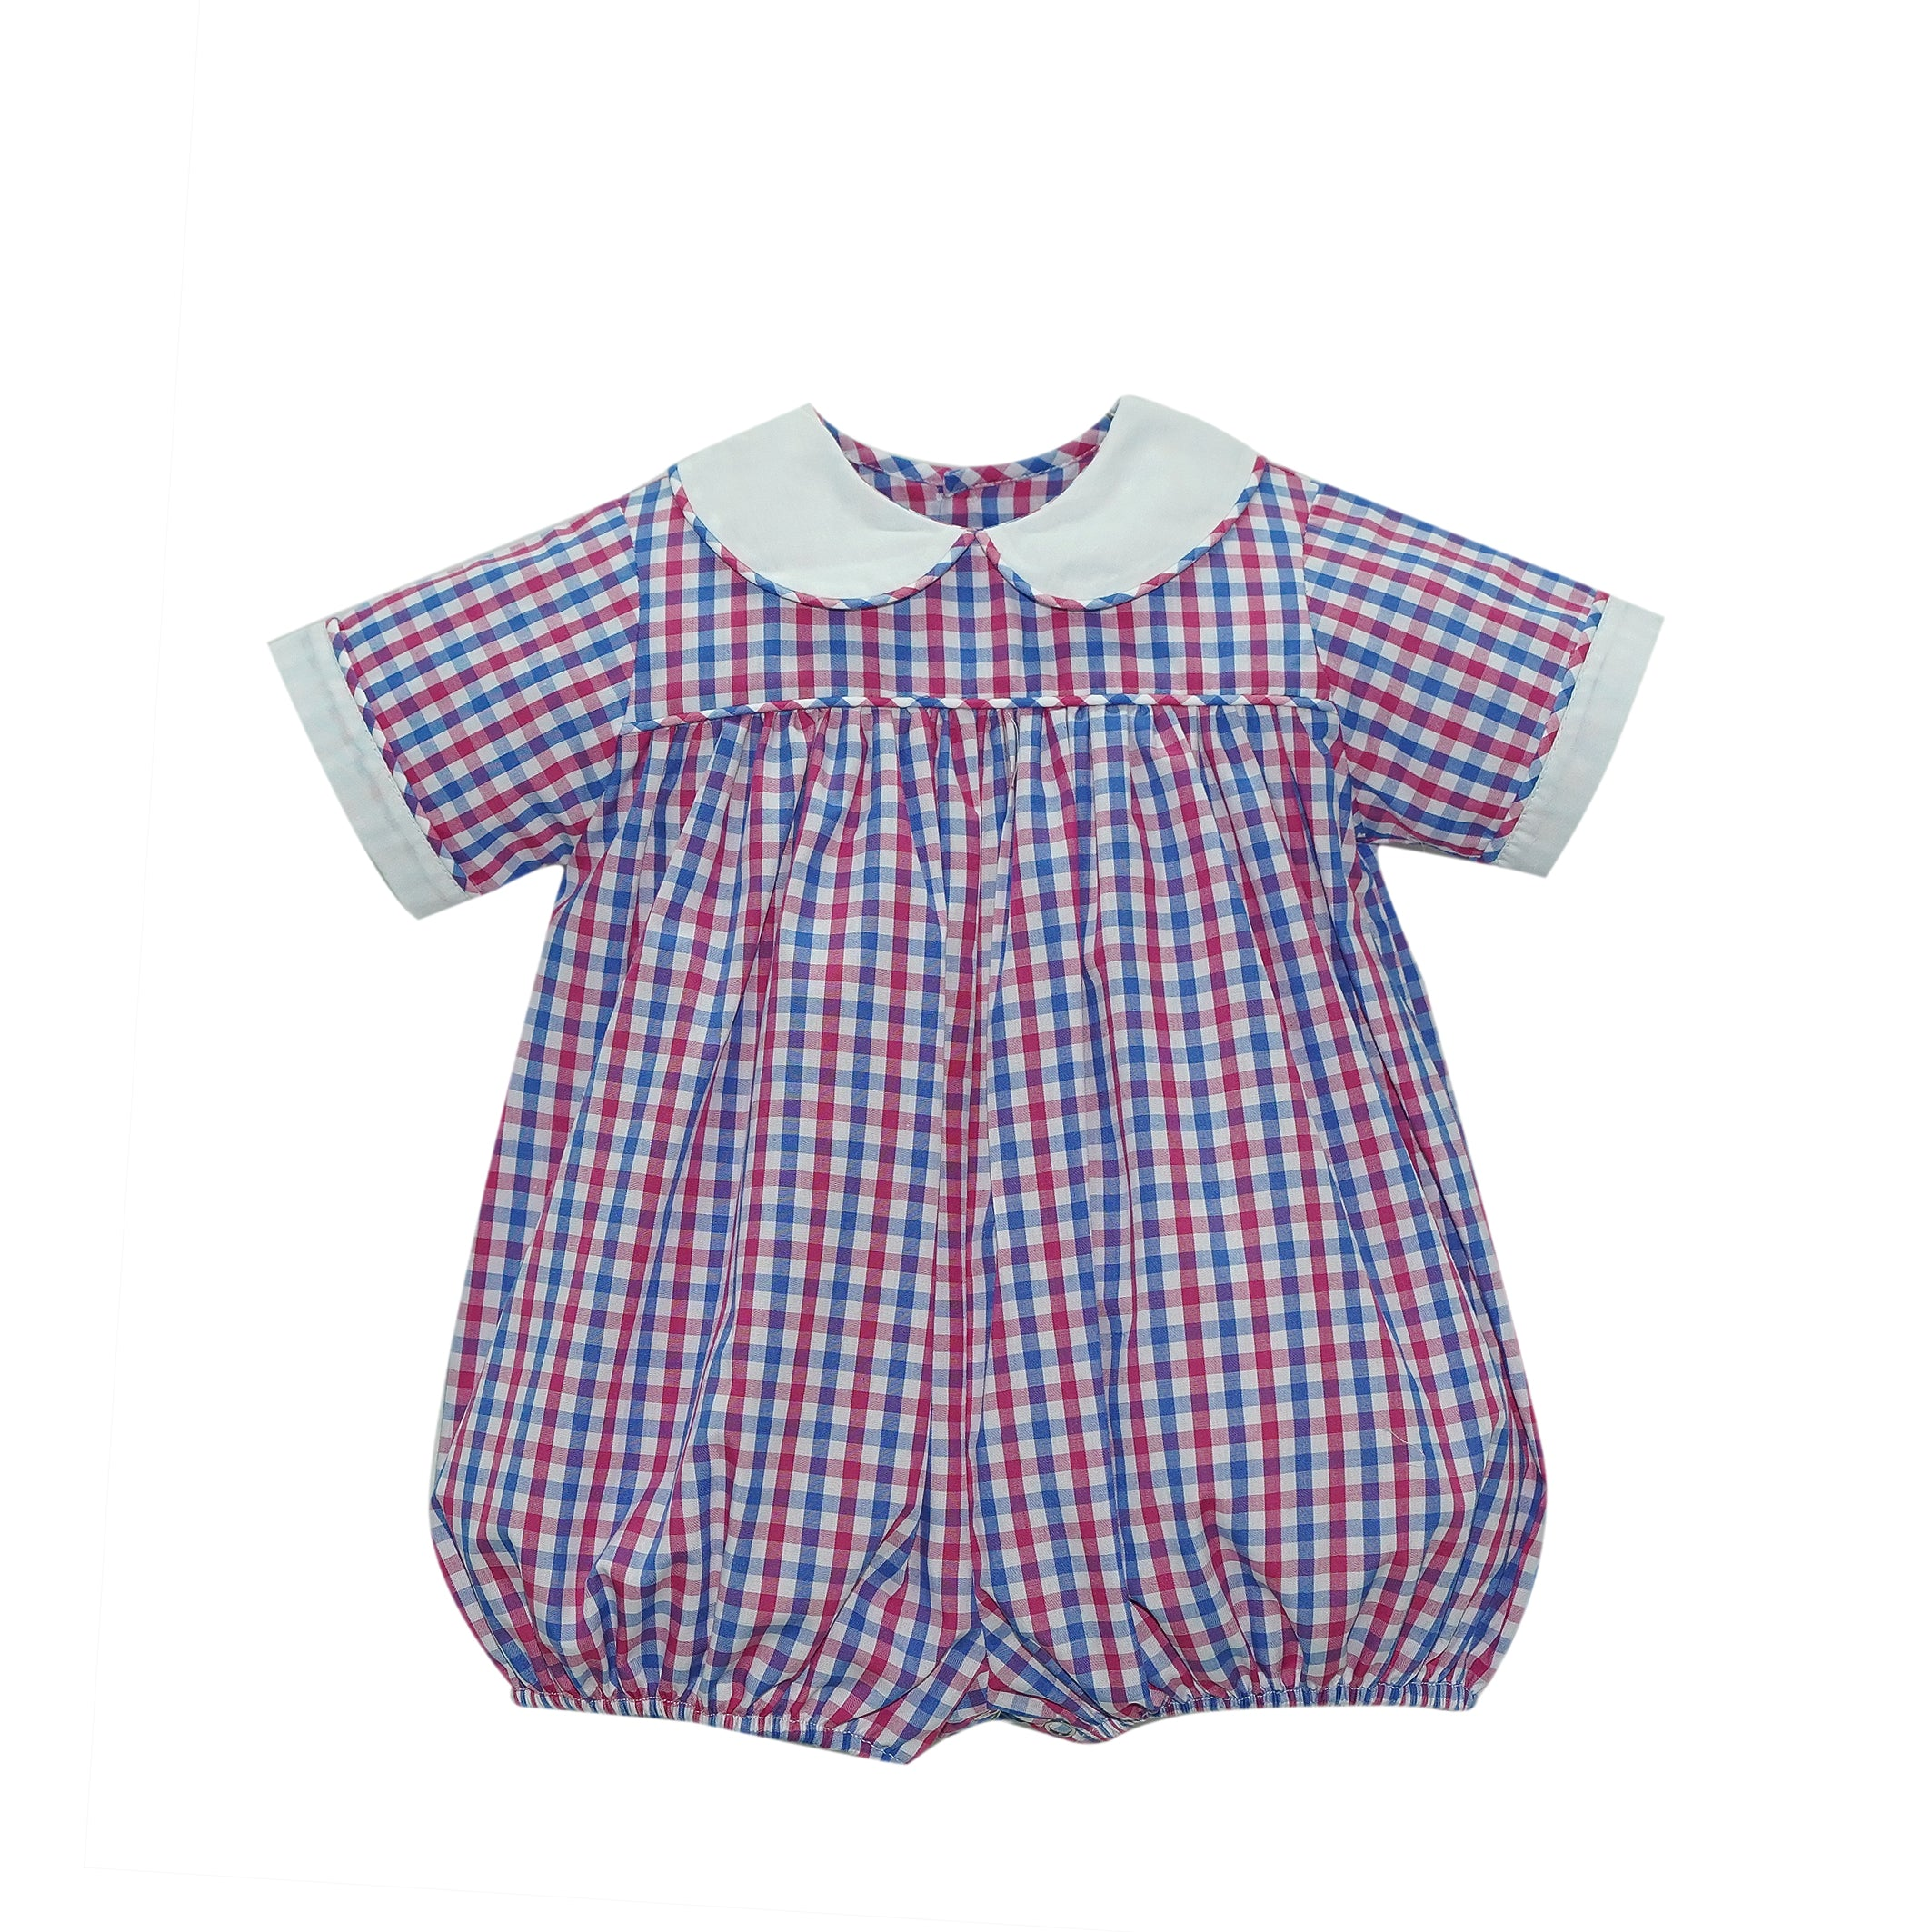 Covington Bubble - Pink/Blue Plaid